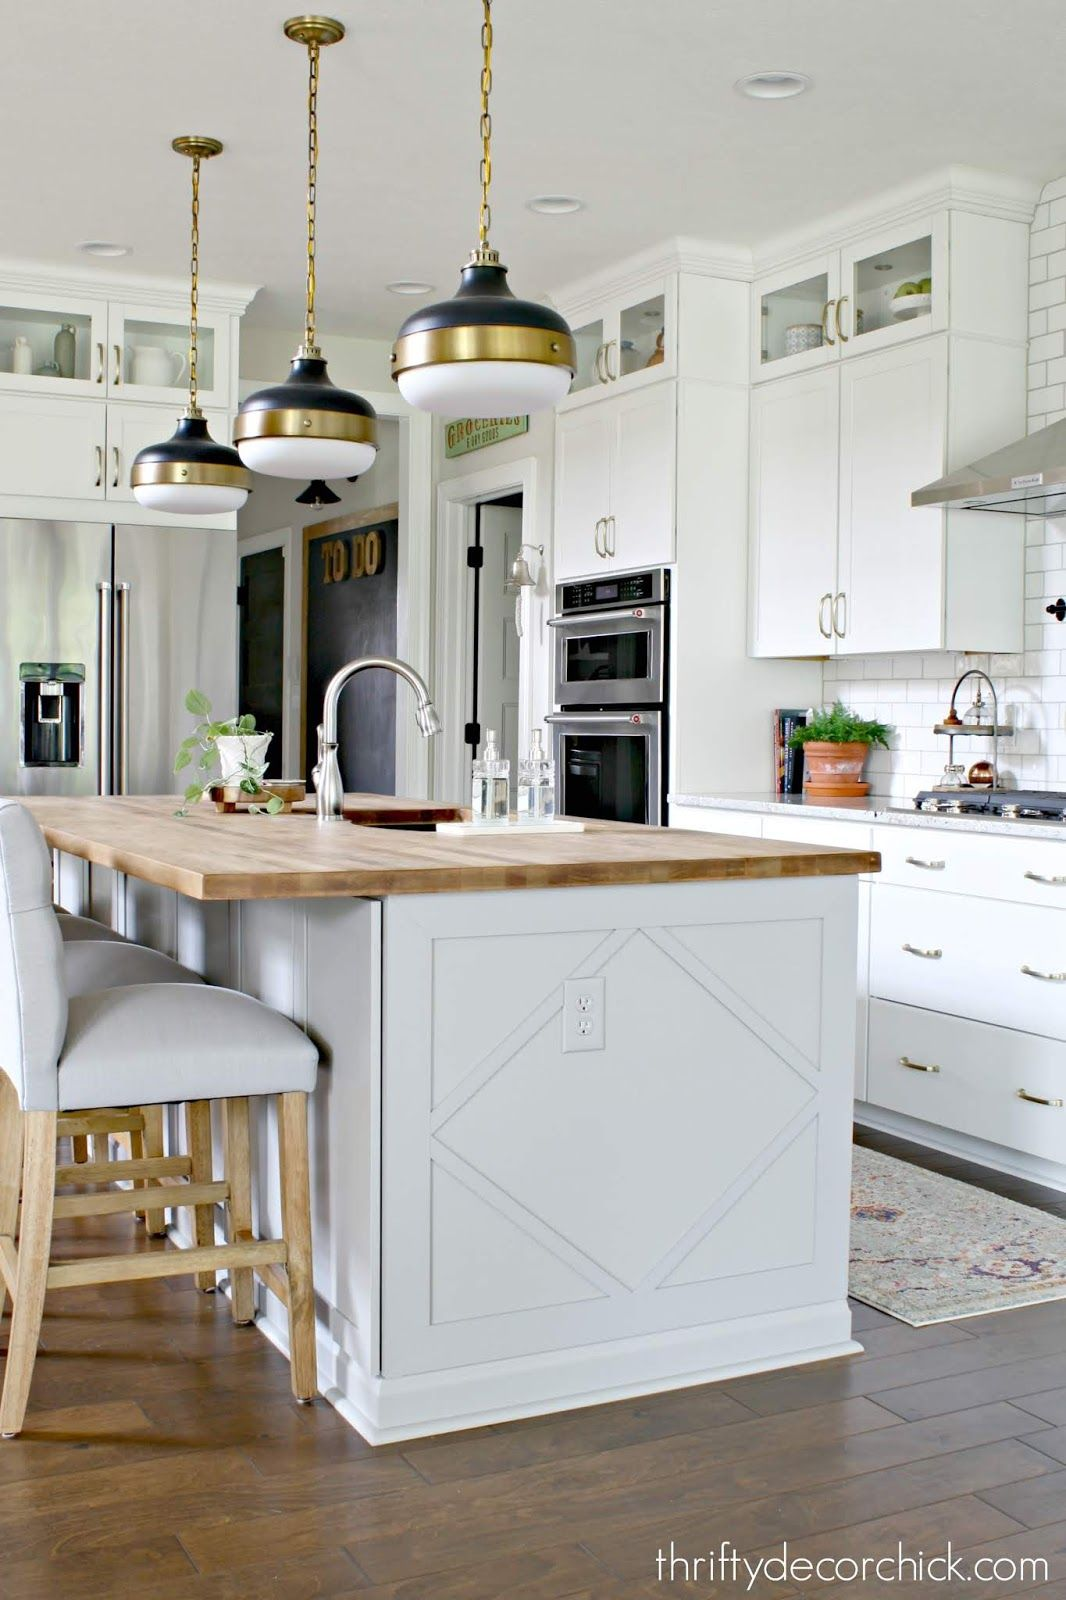 How to customize a plain kitchen island with side panels ...